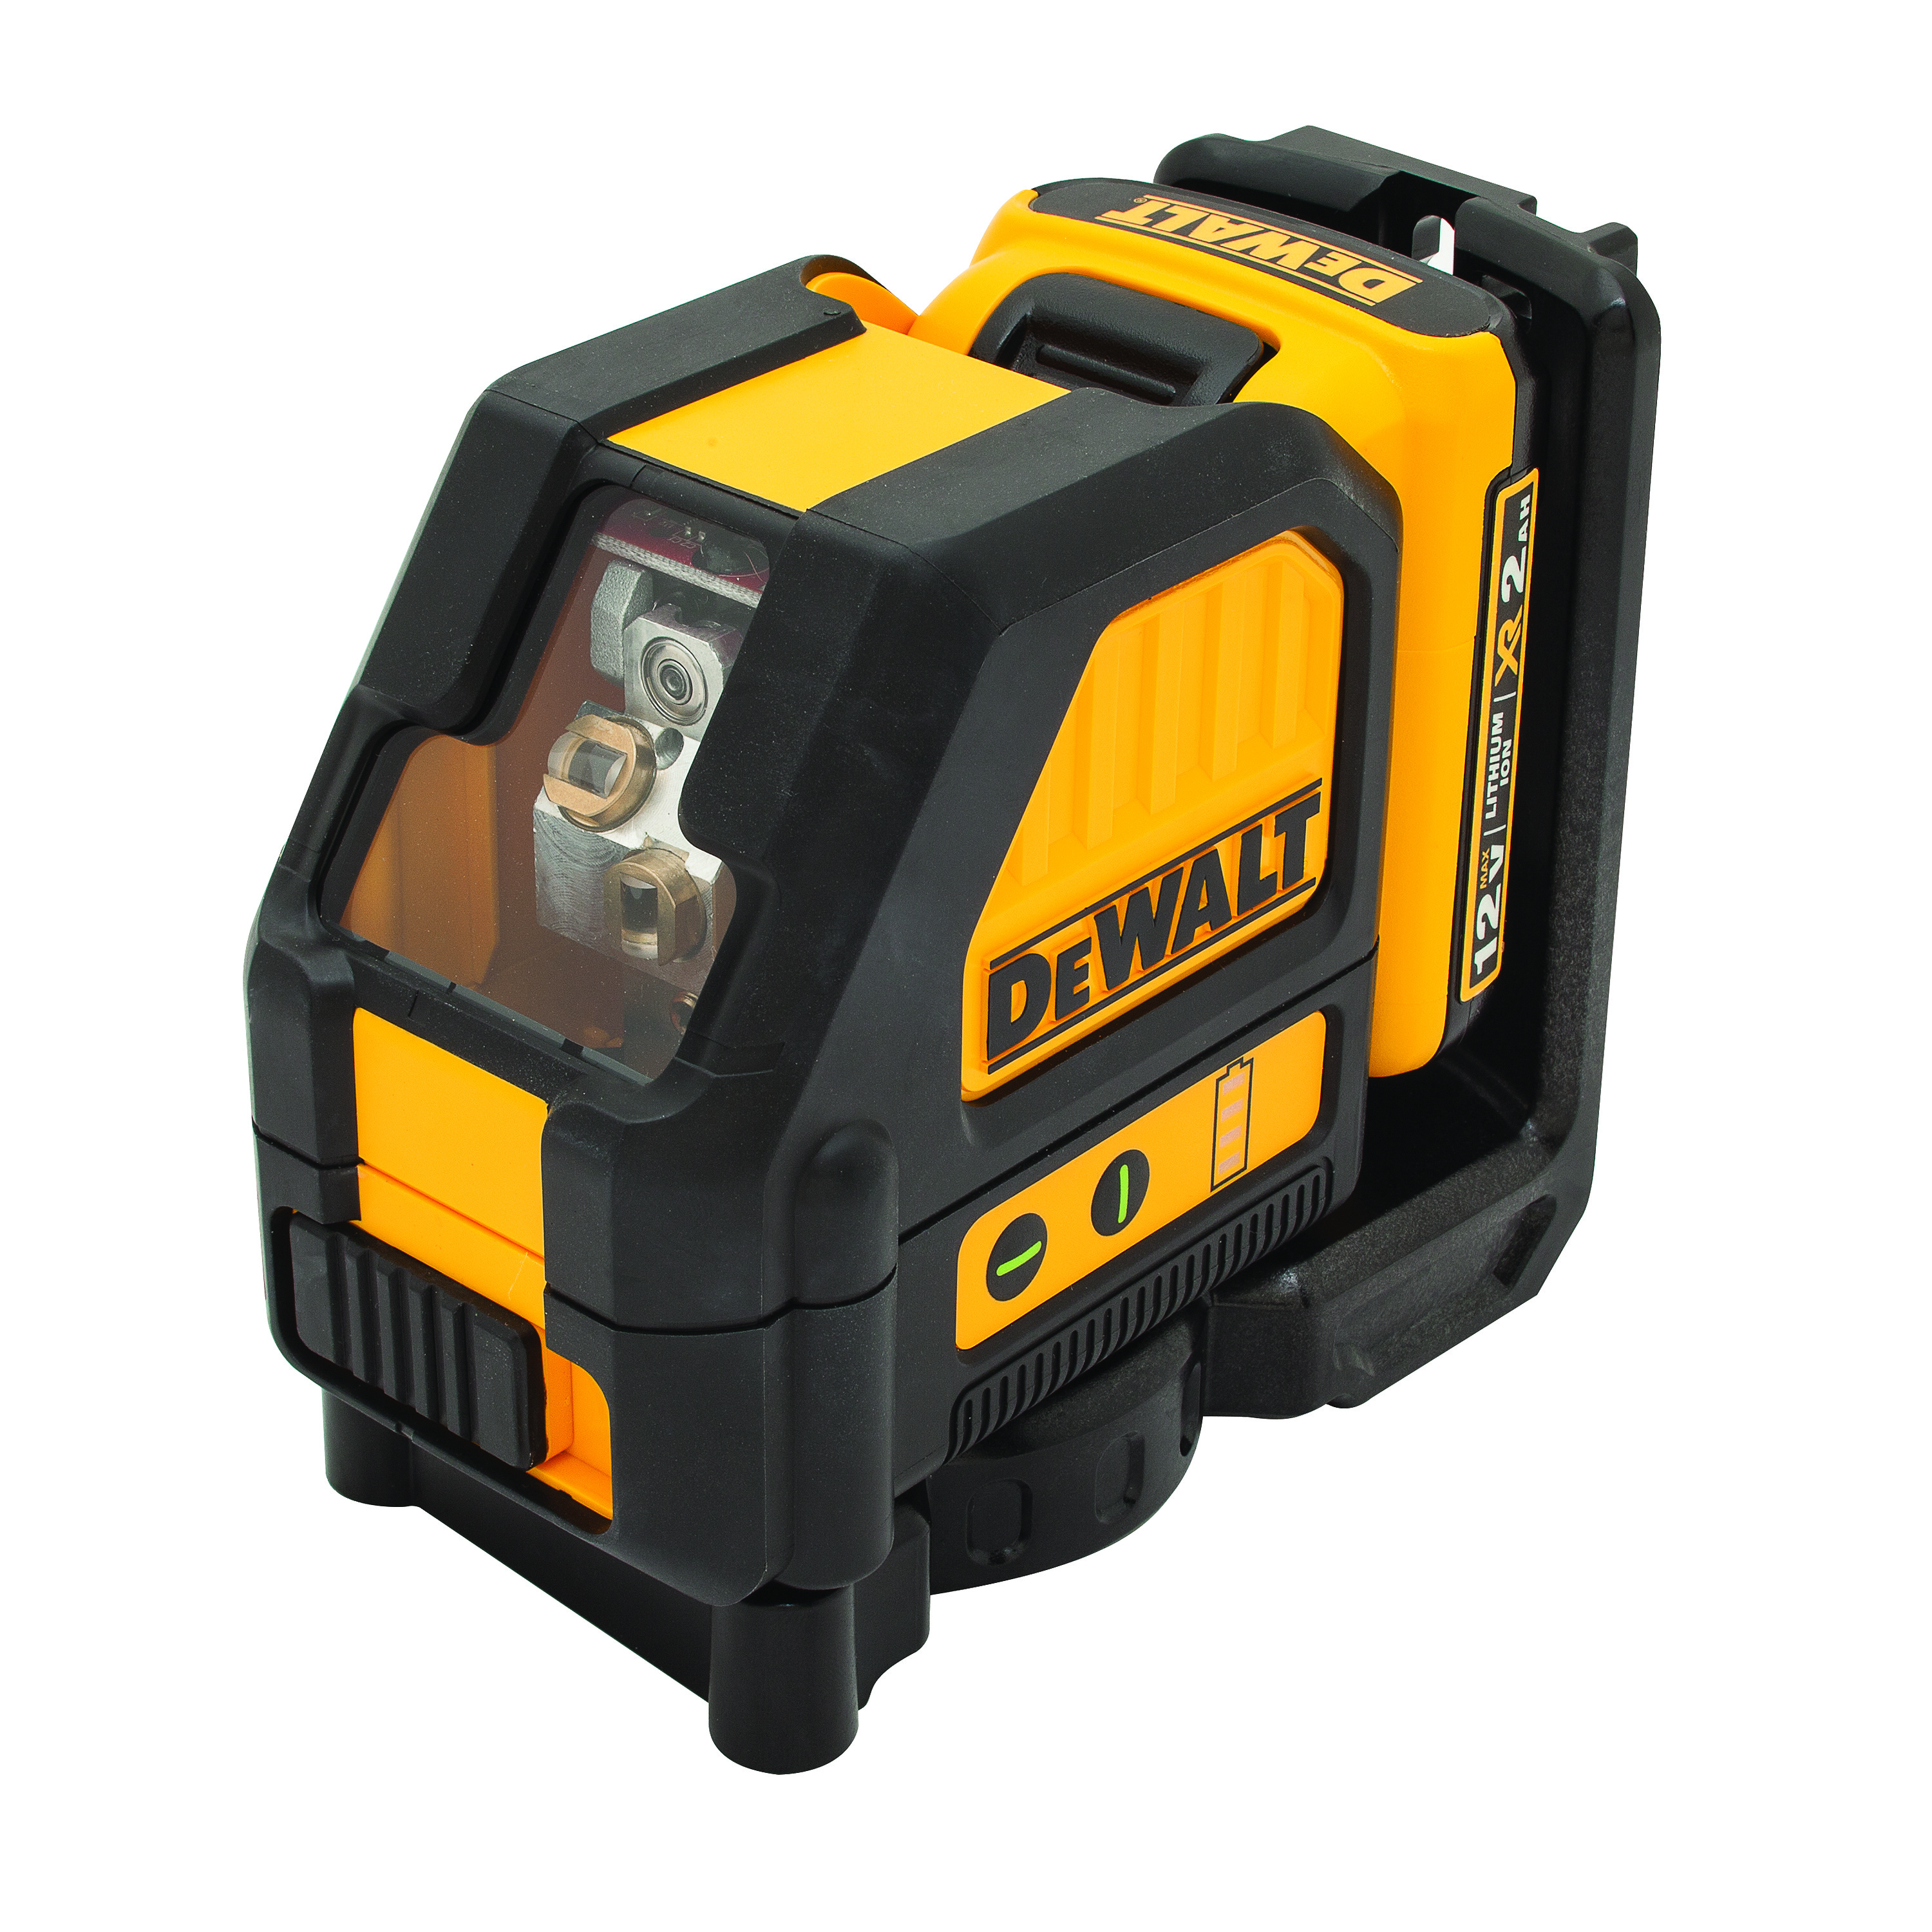 **Sale! Add to cart, save 15% more  - DeWALT® 12V MAX* DW088LG Auto-Leveling Cordless Cross Line Laser Kit, 100 ft Measuring, +/-1/8 in Accuracy, 2 Beams, Battery